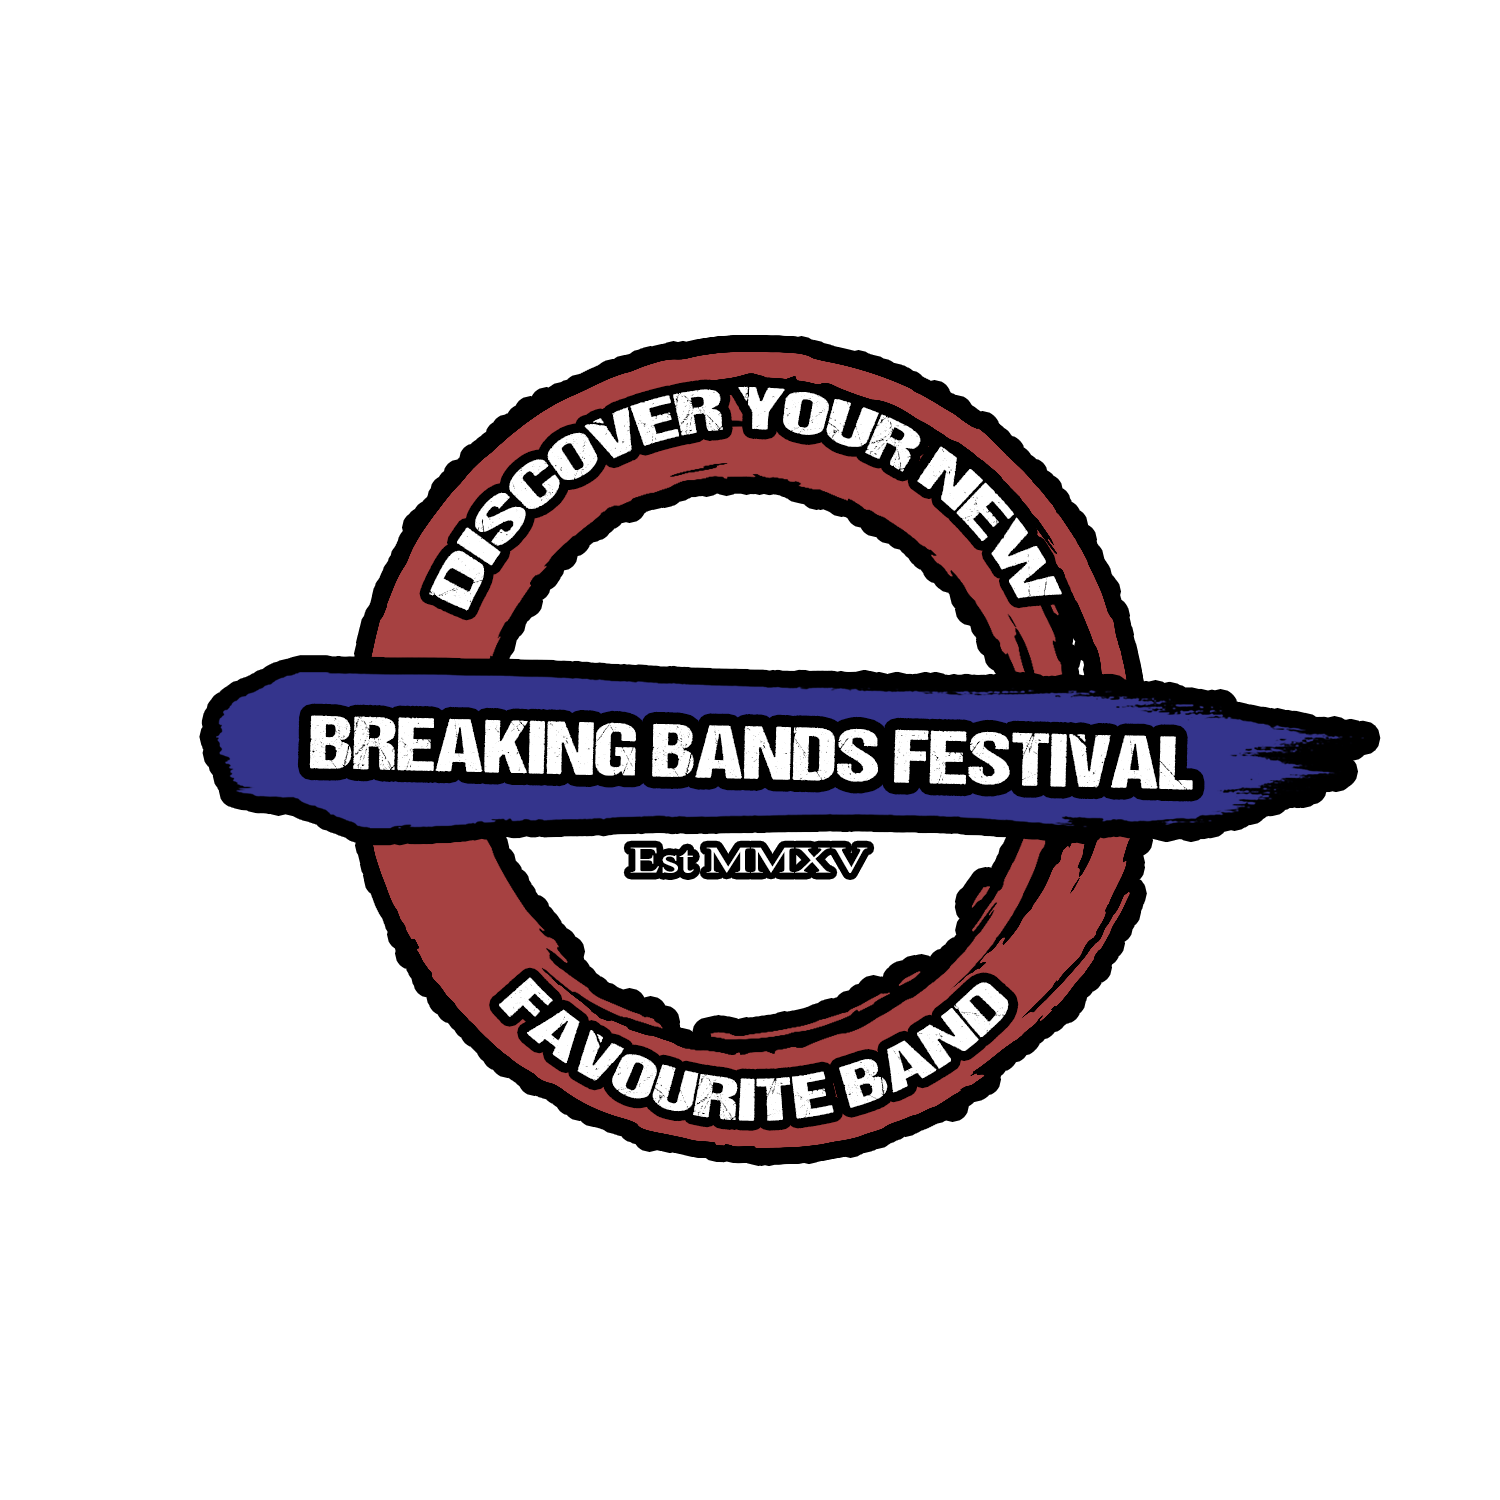 BREAKING BANDS FESTIVAL 2020: A CATCH UP OF WHAT'S IN STORE THIS YEAR